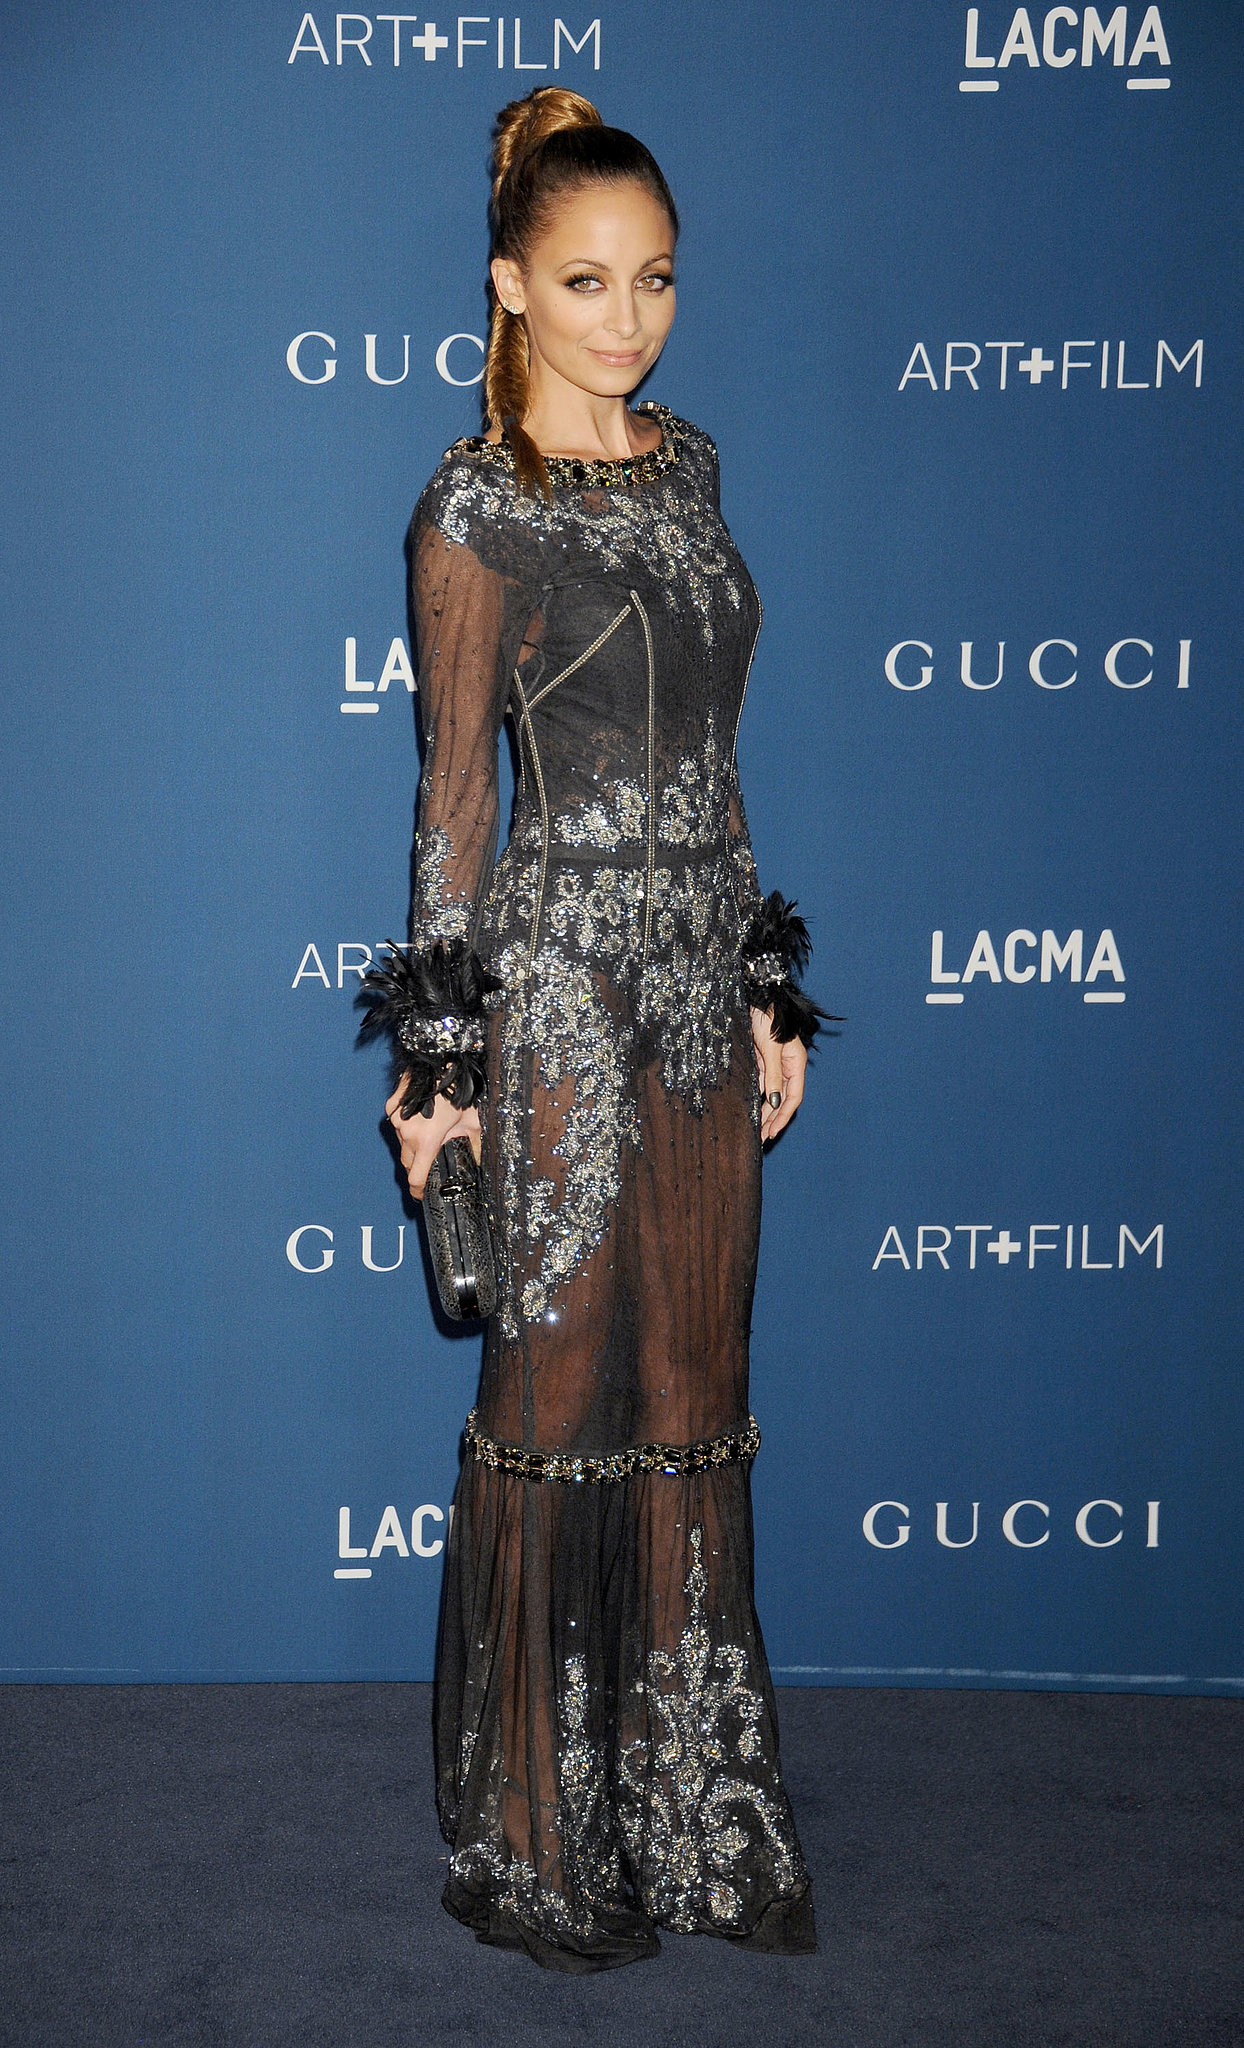 Nicole Richie was sheer perfection in Dolce & Gabbana's embellished gown at the LACMA 2013 Art + Film Gala.